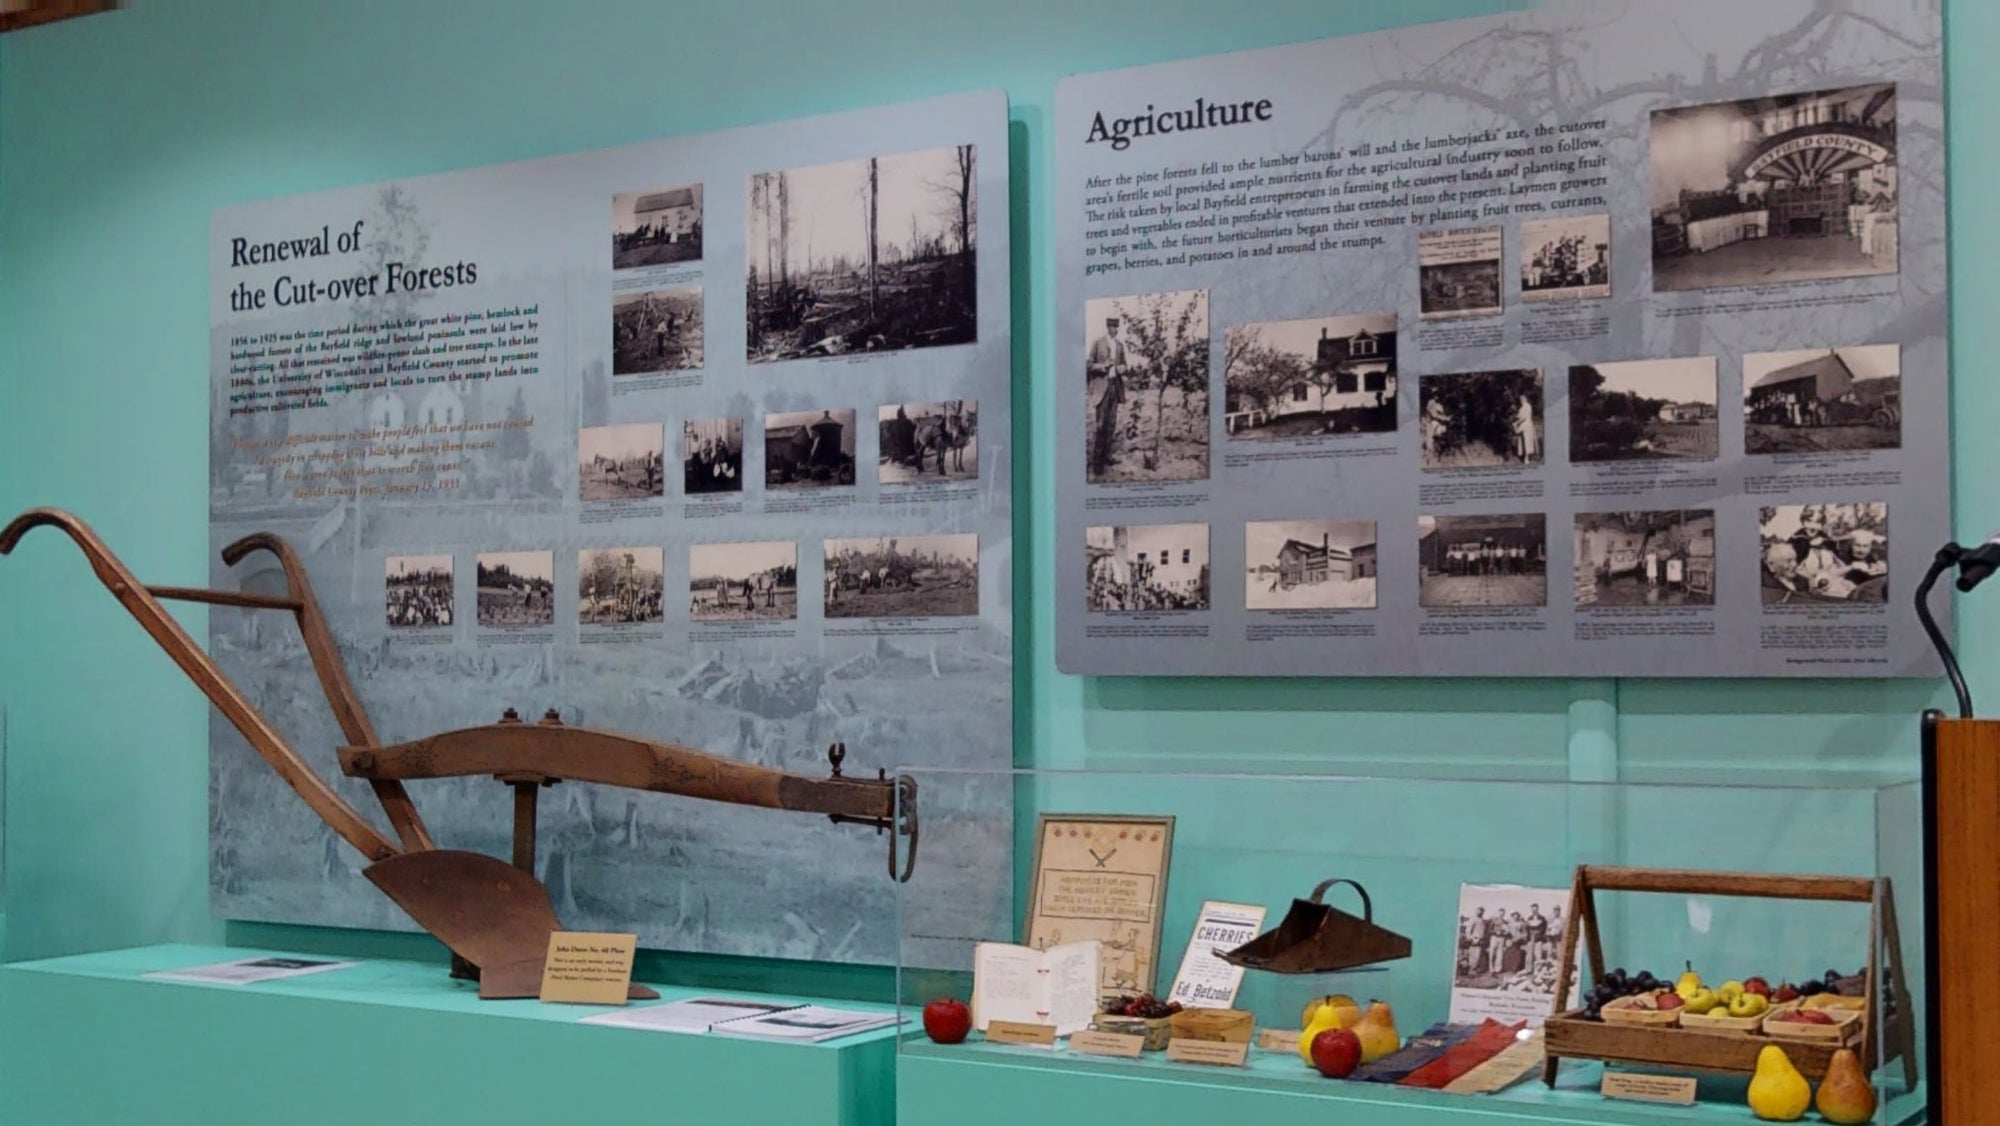 Timber-Agriculture - BHA Exhibit